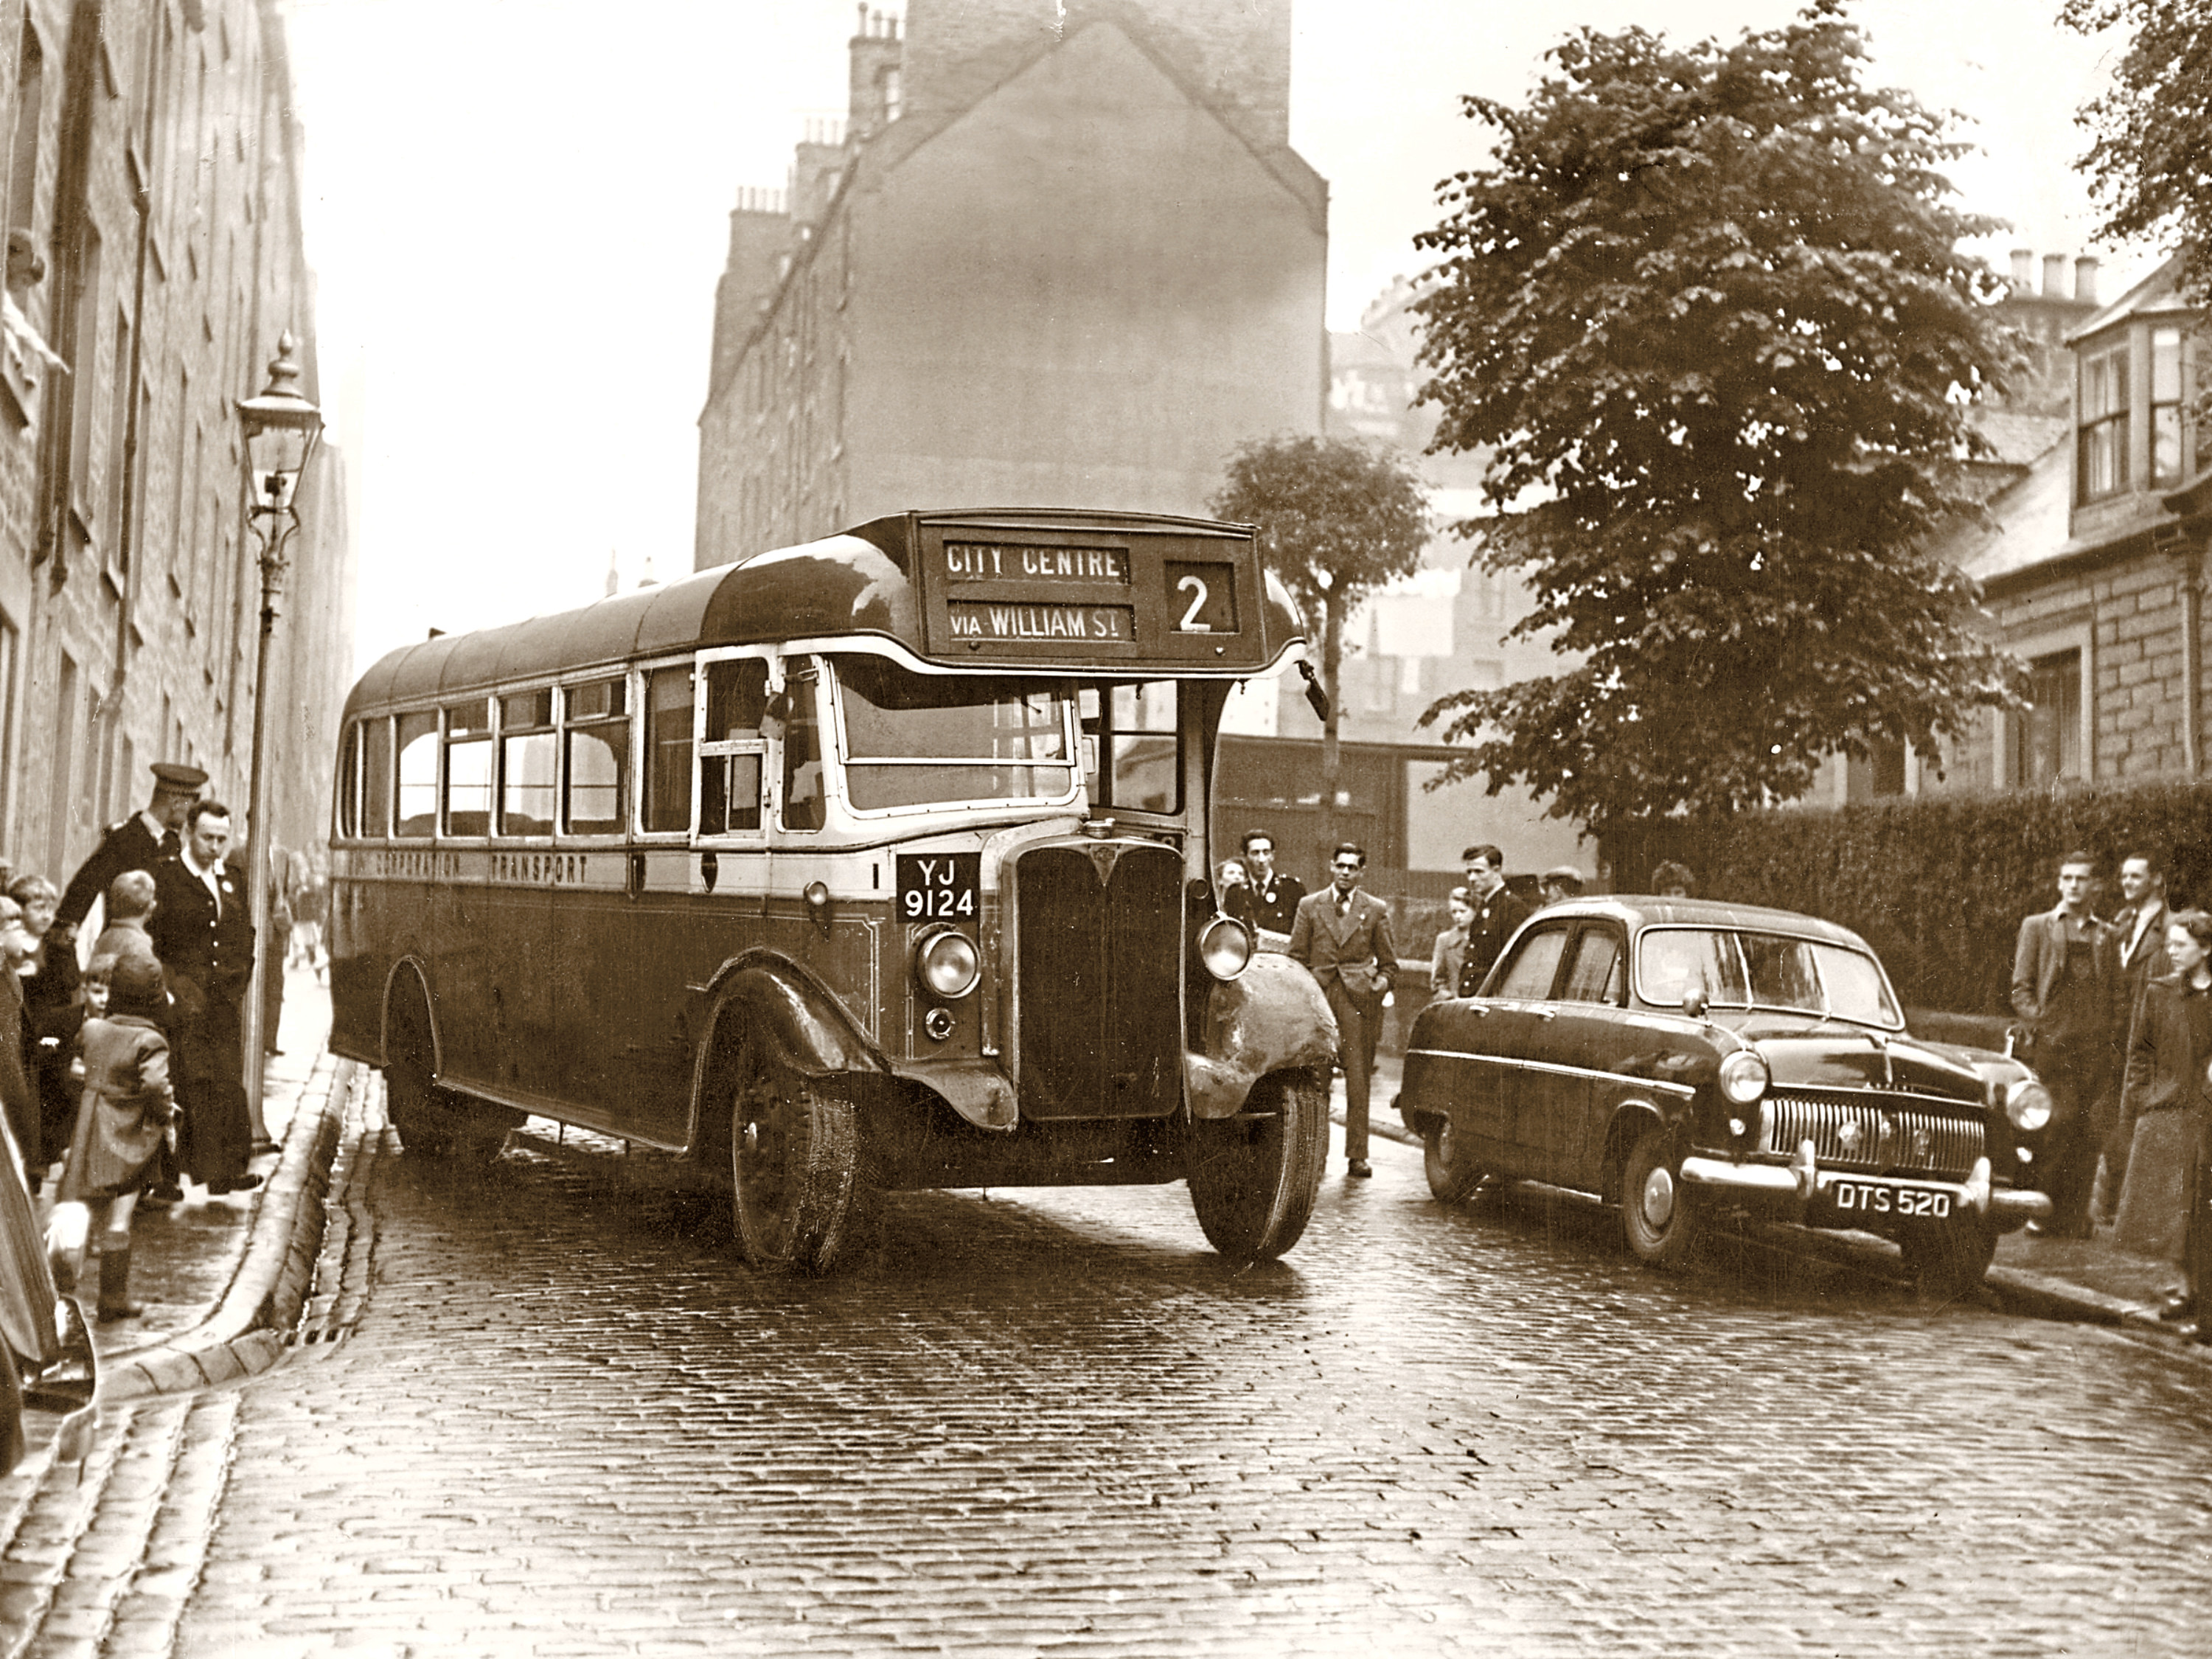 A Dundee Corporation bus in William Street in 1954.